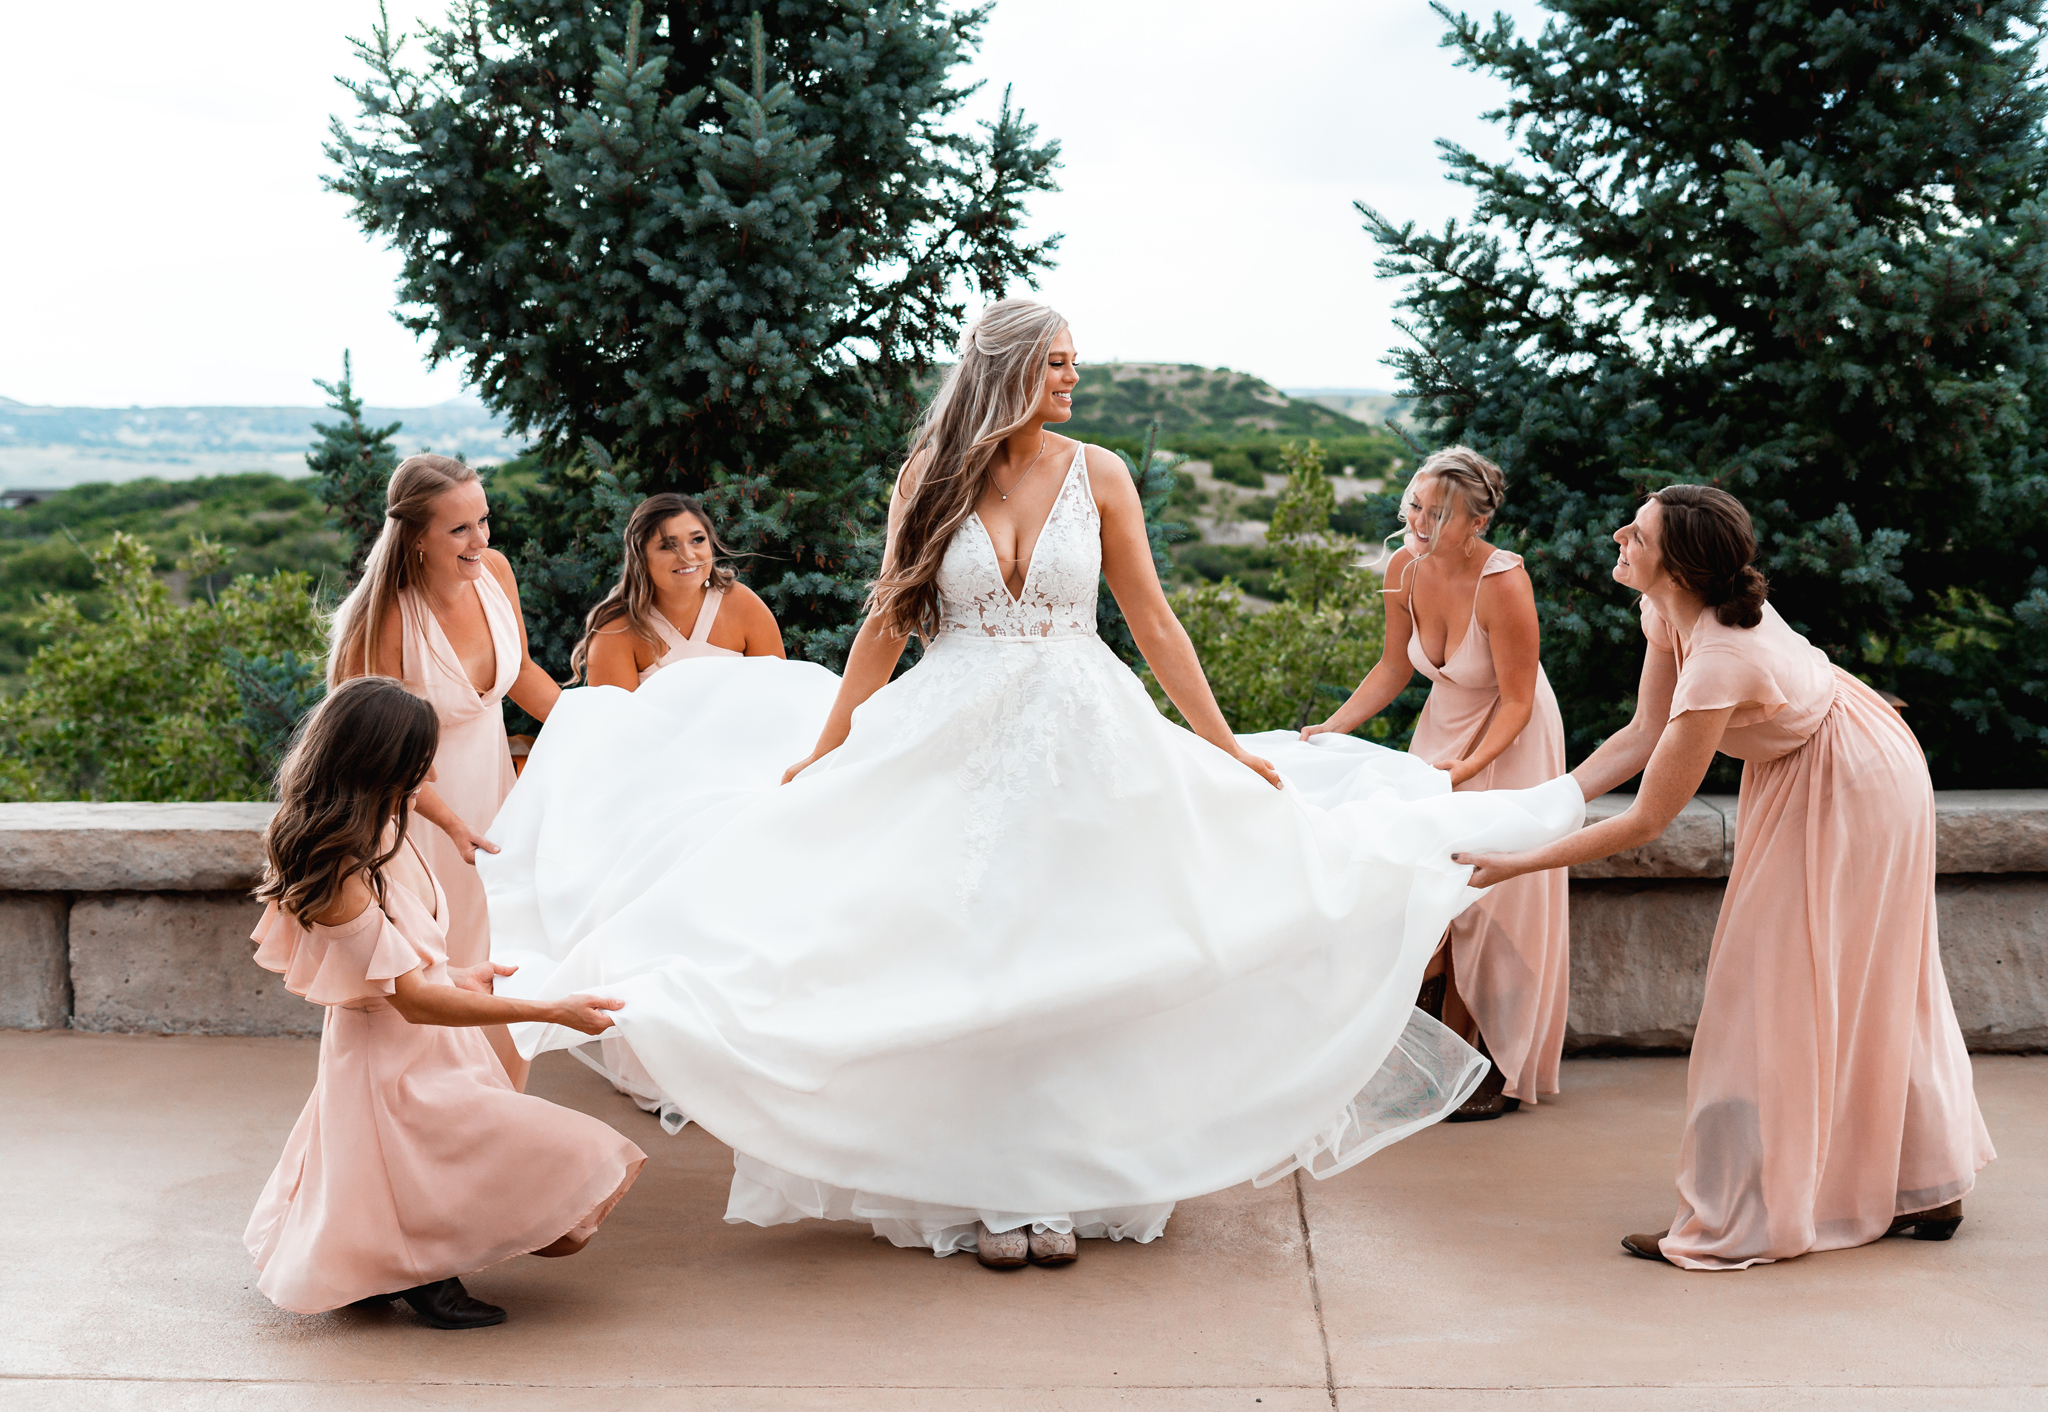 Macey & Rancy's Colorado Mountain Wedding by Colorado Wedding Photographer, All Digital Photo & Video. Colorado Wedding Photographer, Colorado Wedding Photo, Colorado Wedding, Wedding Photography